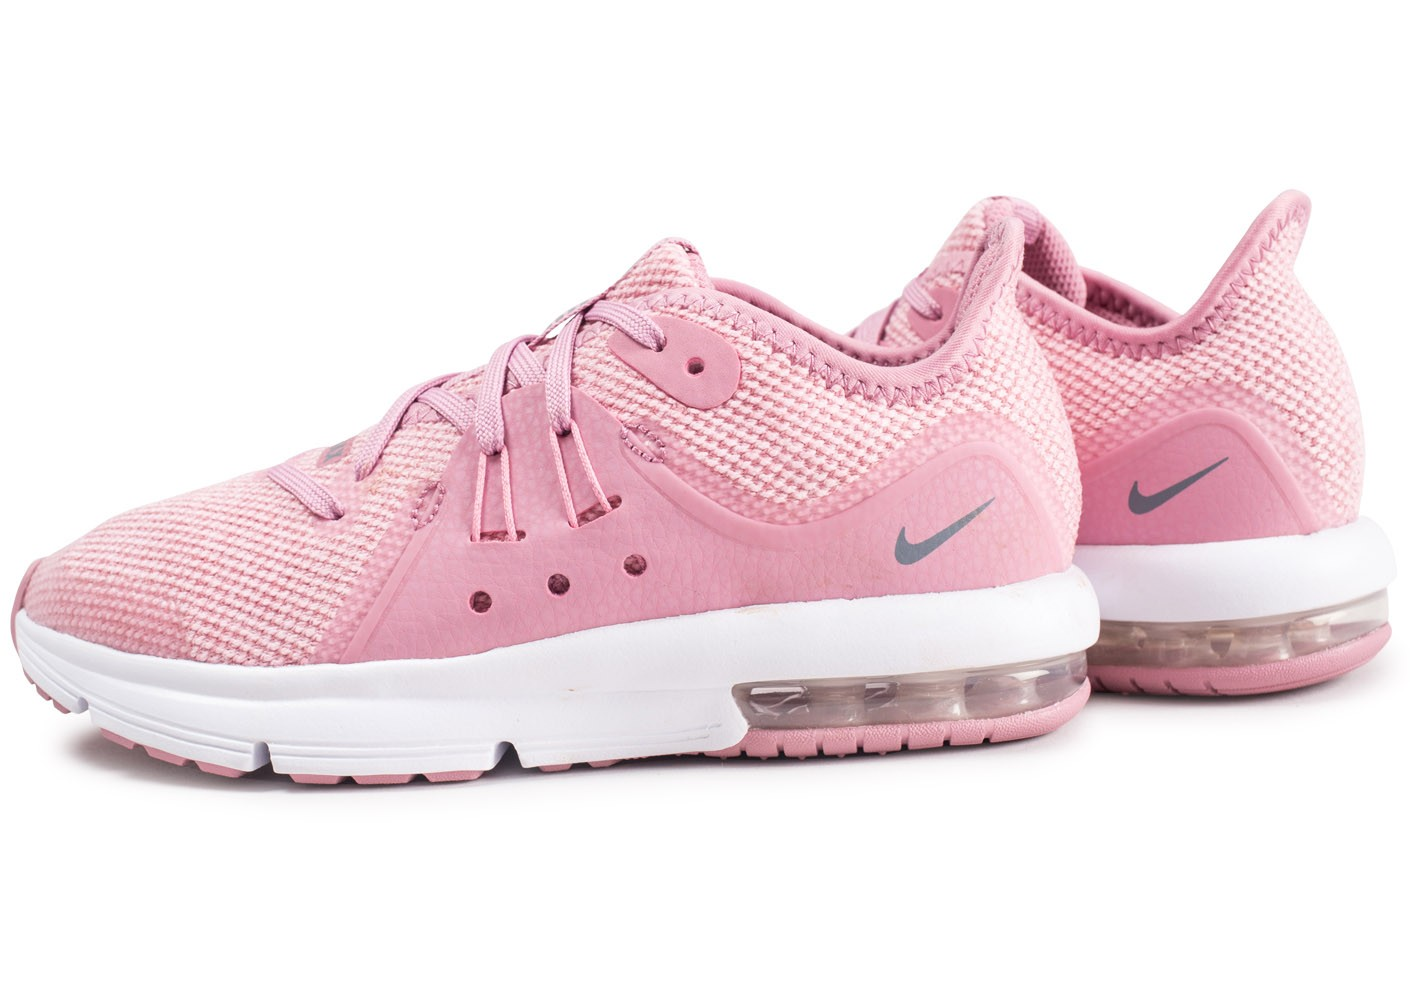 Chaussures Sequent mode enfant rose Nike Air 2 baskets et